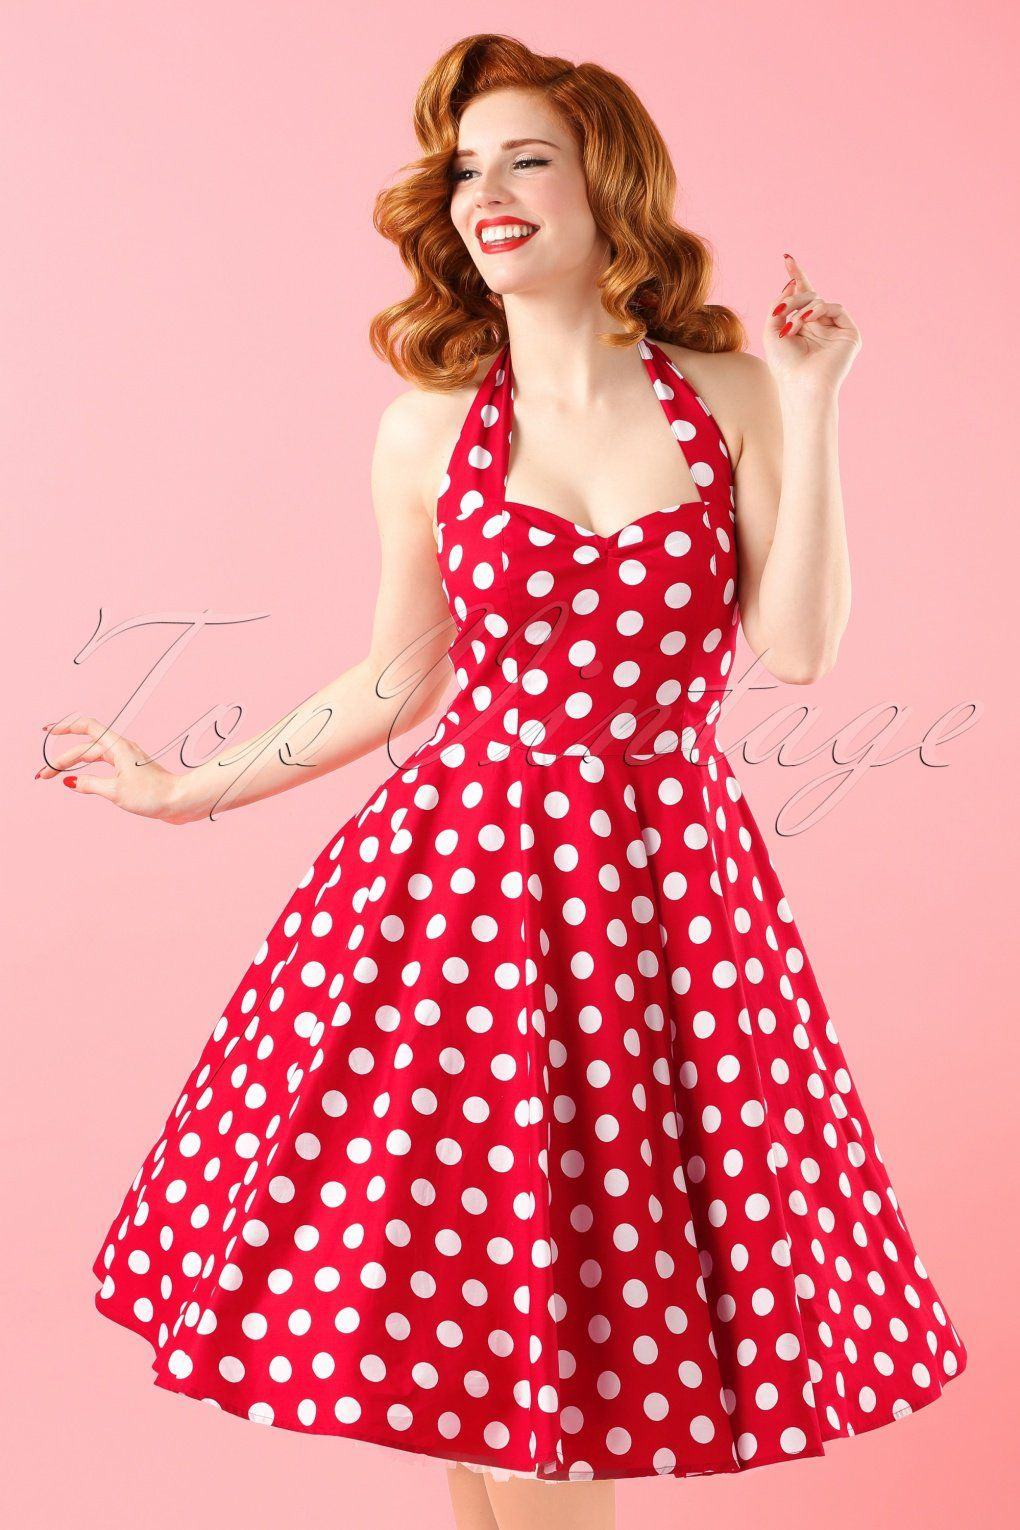 1a59d8ae77 Vintage Polka Dot Dresses - 50s Spotty and Ditsy Prints in 2019 ...